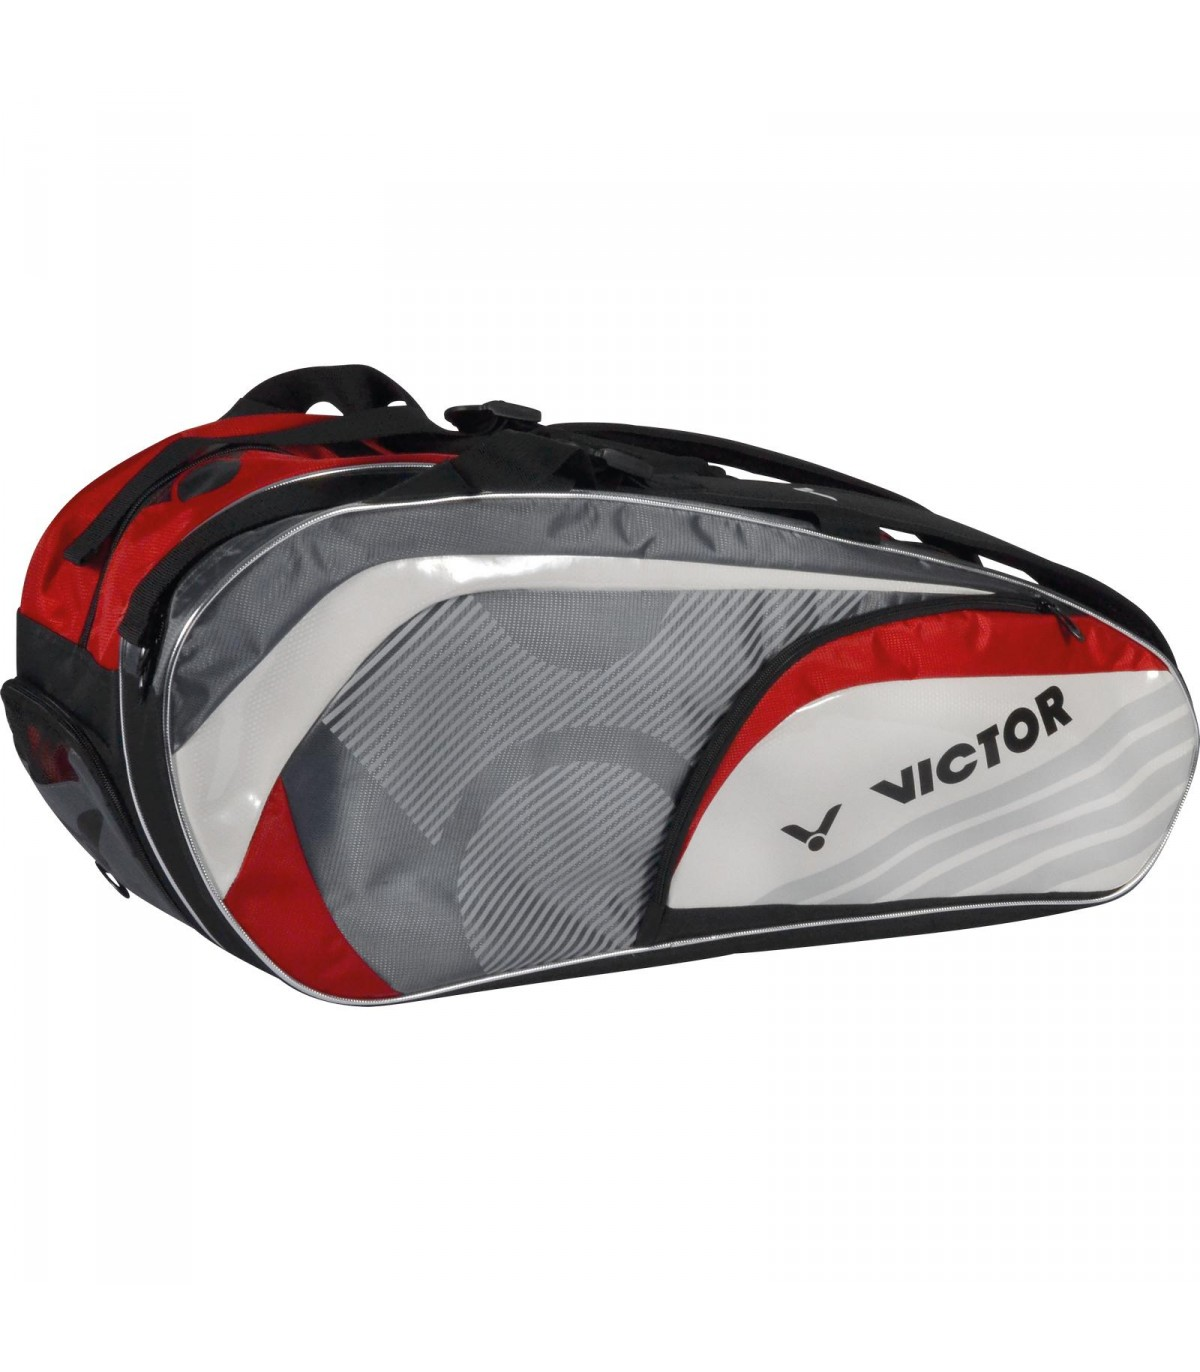 27a1e8e233 Victor Doublethermobag 9117 Red. Victor Doublethermobag BR6211 Orange. Victor  Multithermobag Supreme 9037 Green. The Victor DoubleThermobag 9116 blue  squash ...